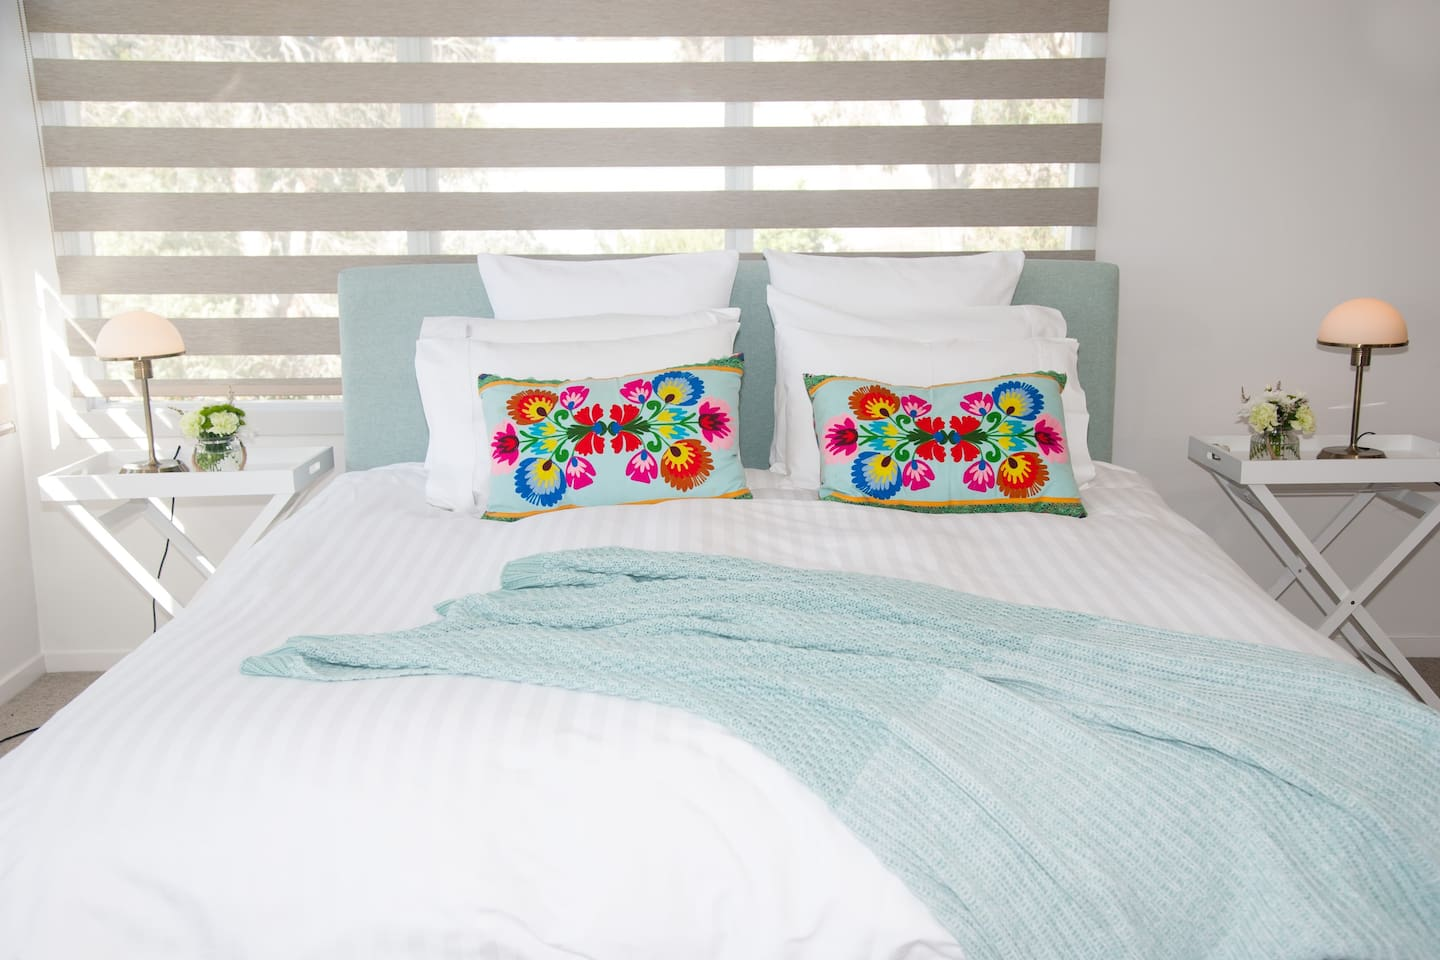 King bed with crispy clean quality linen. Spacious bedroom also has lounge chairs to relax in and enjoy the views across Milton.